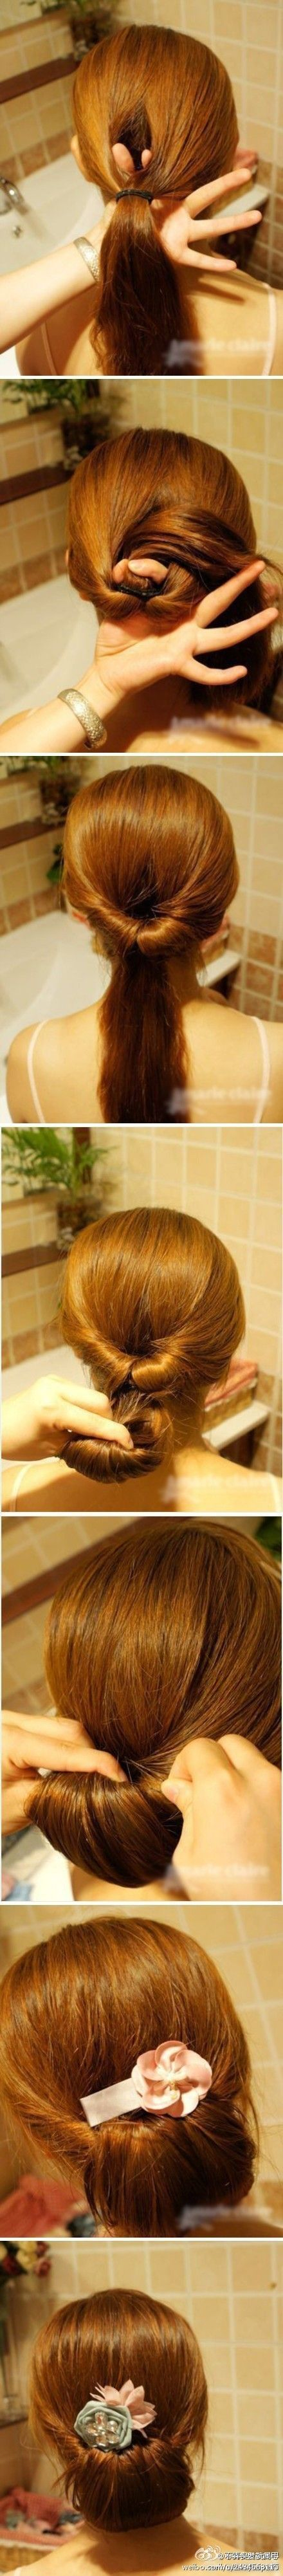 Stunning styles i love pinterest easy updo updo and easy